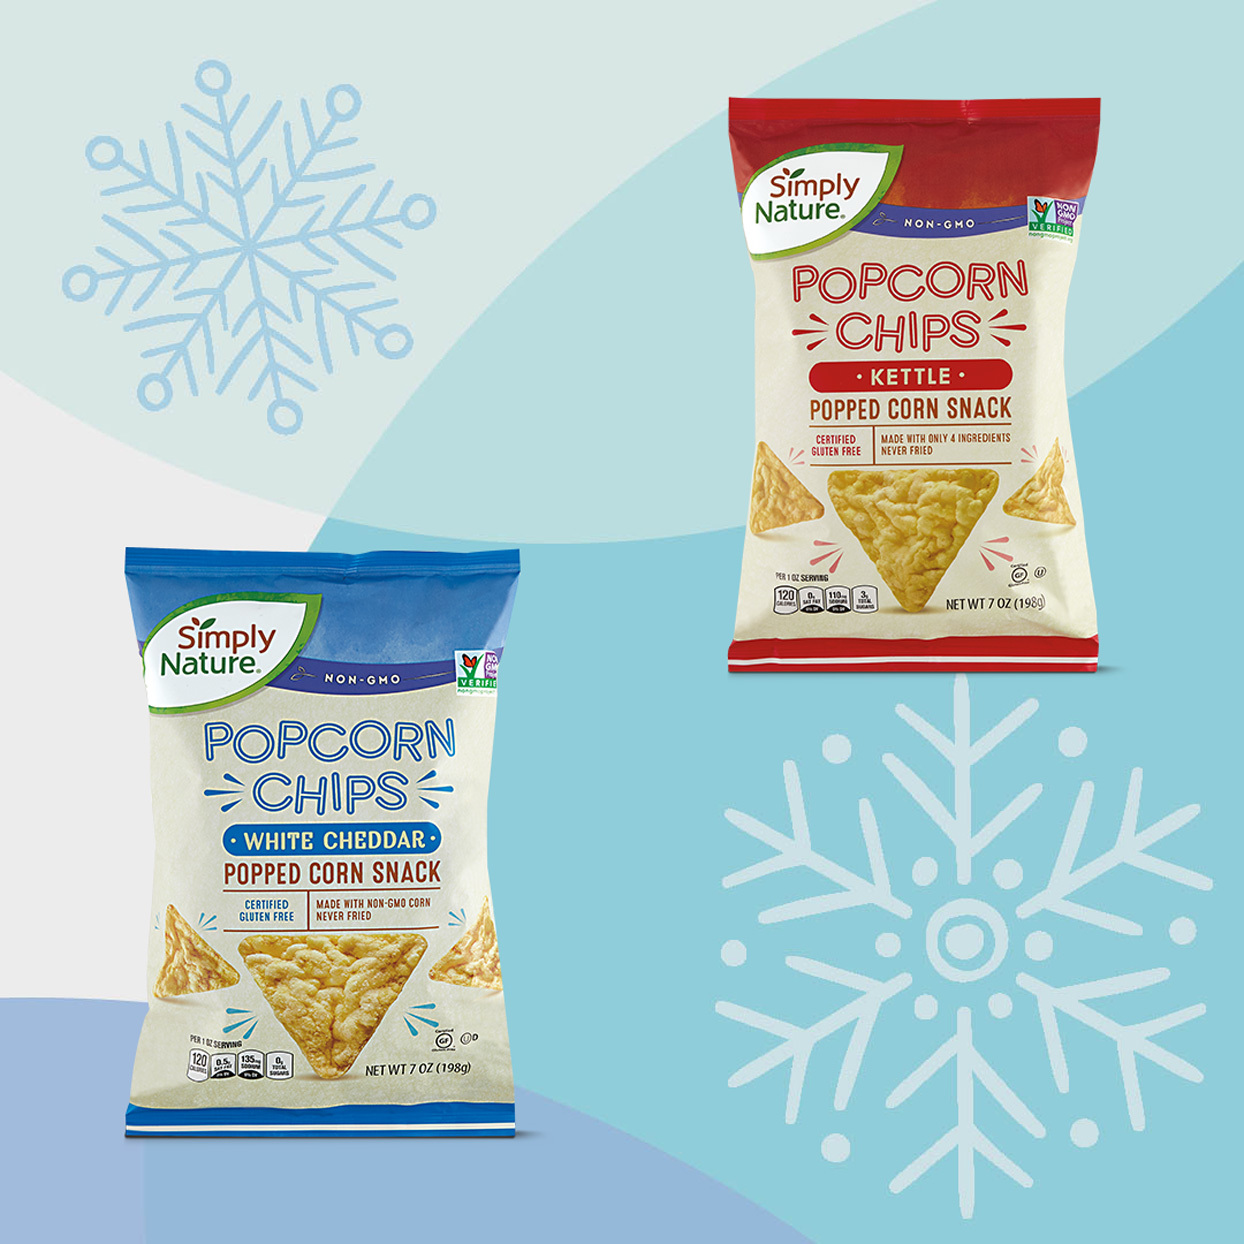 Simply Nature Popcorn Chips